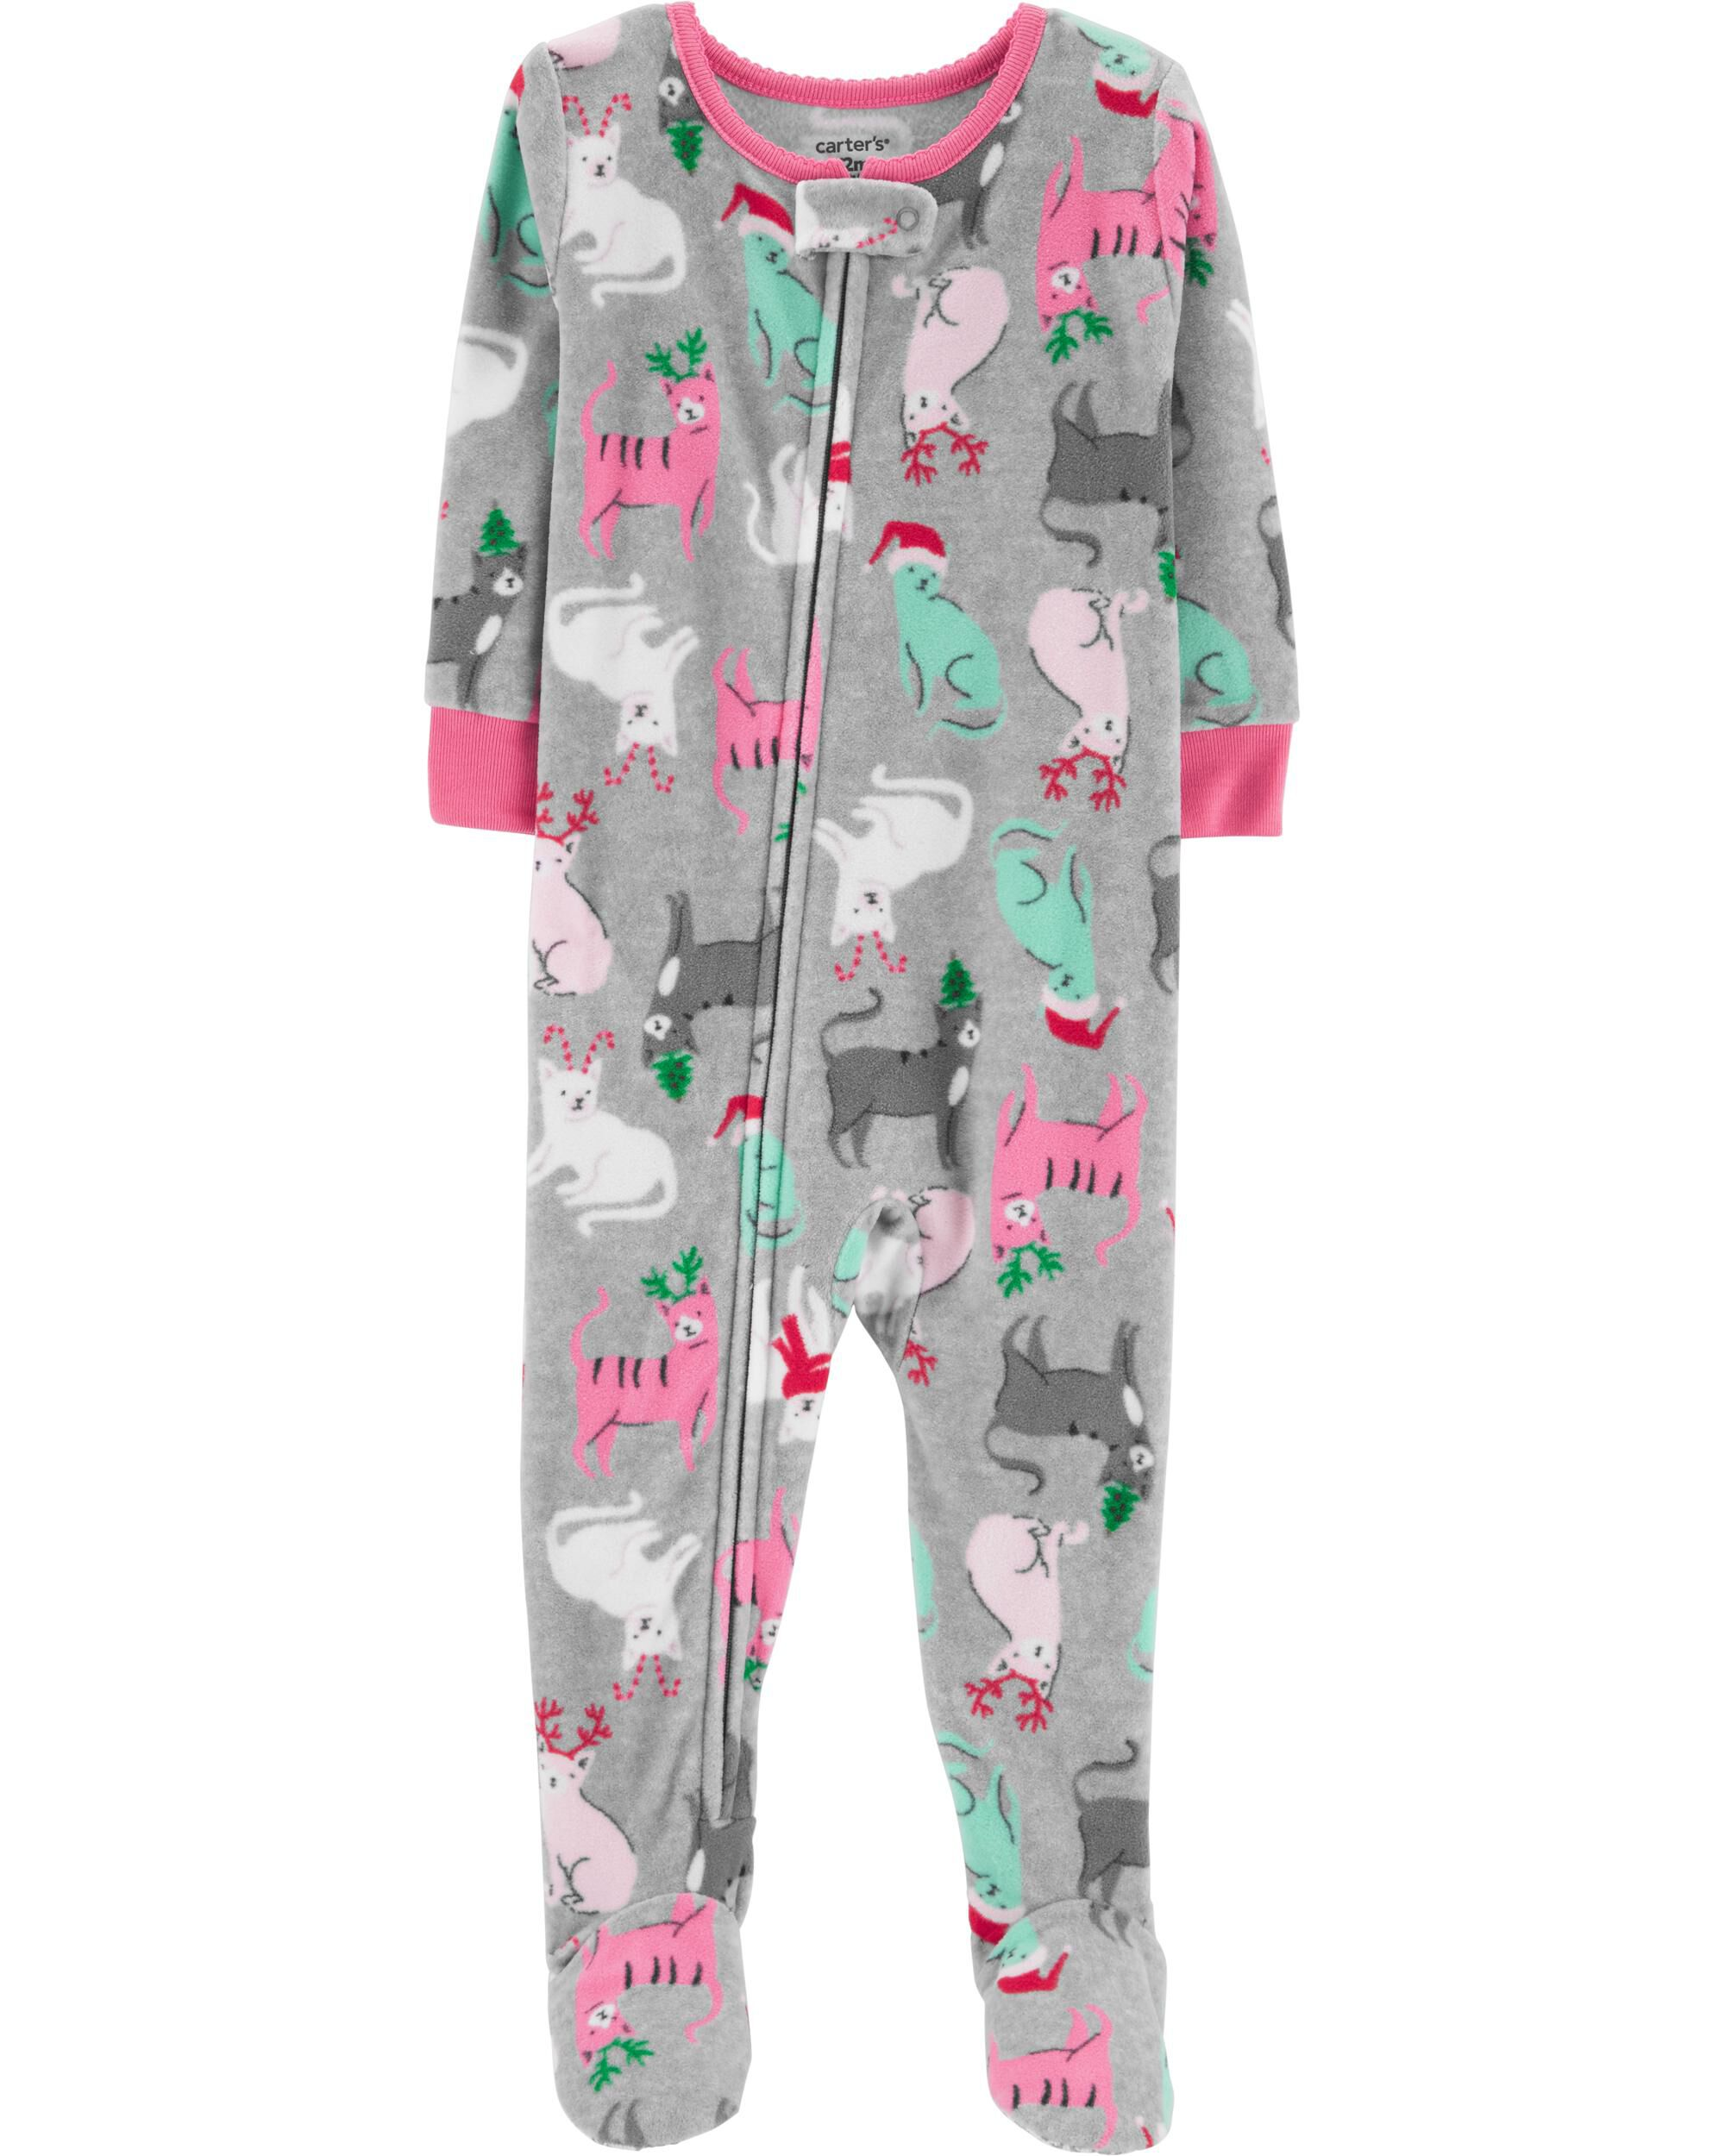 1 piece christmas cat fleece pjs loading zoom